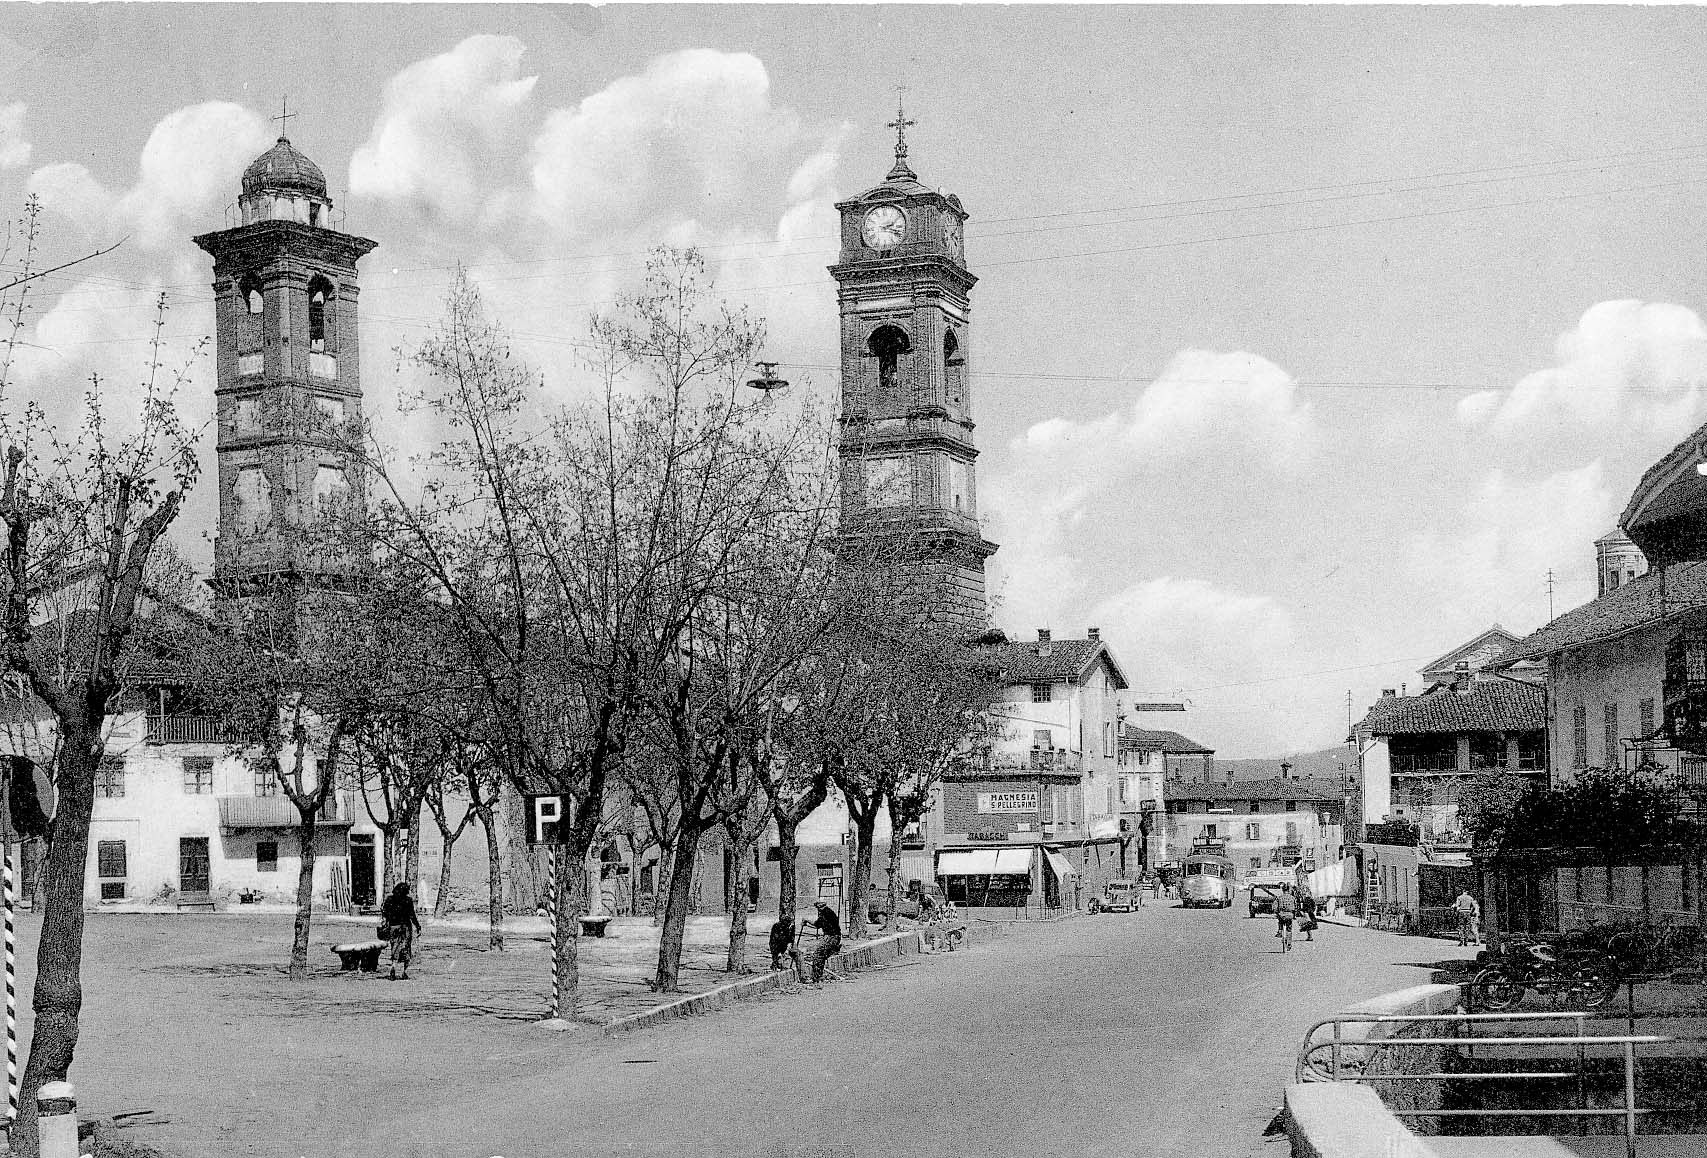 piazza molines 1950